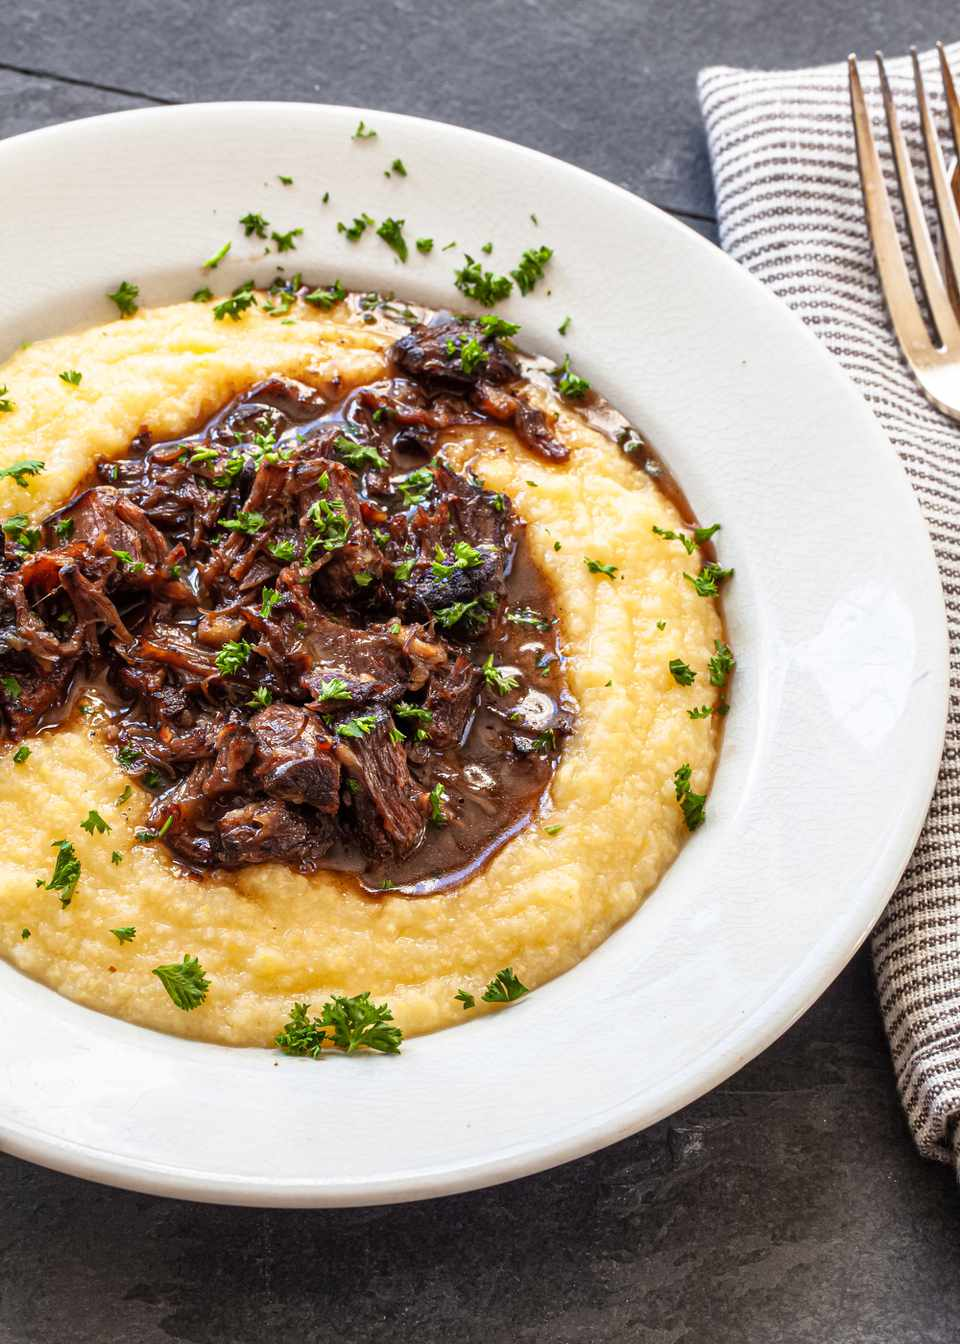 A bowl of grits and braised oxtails.